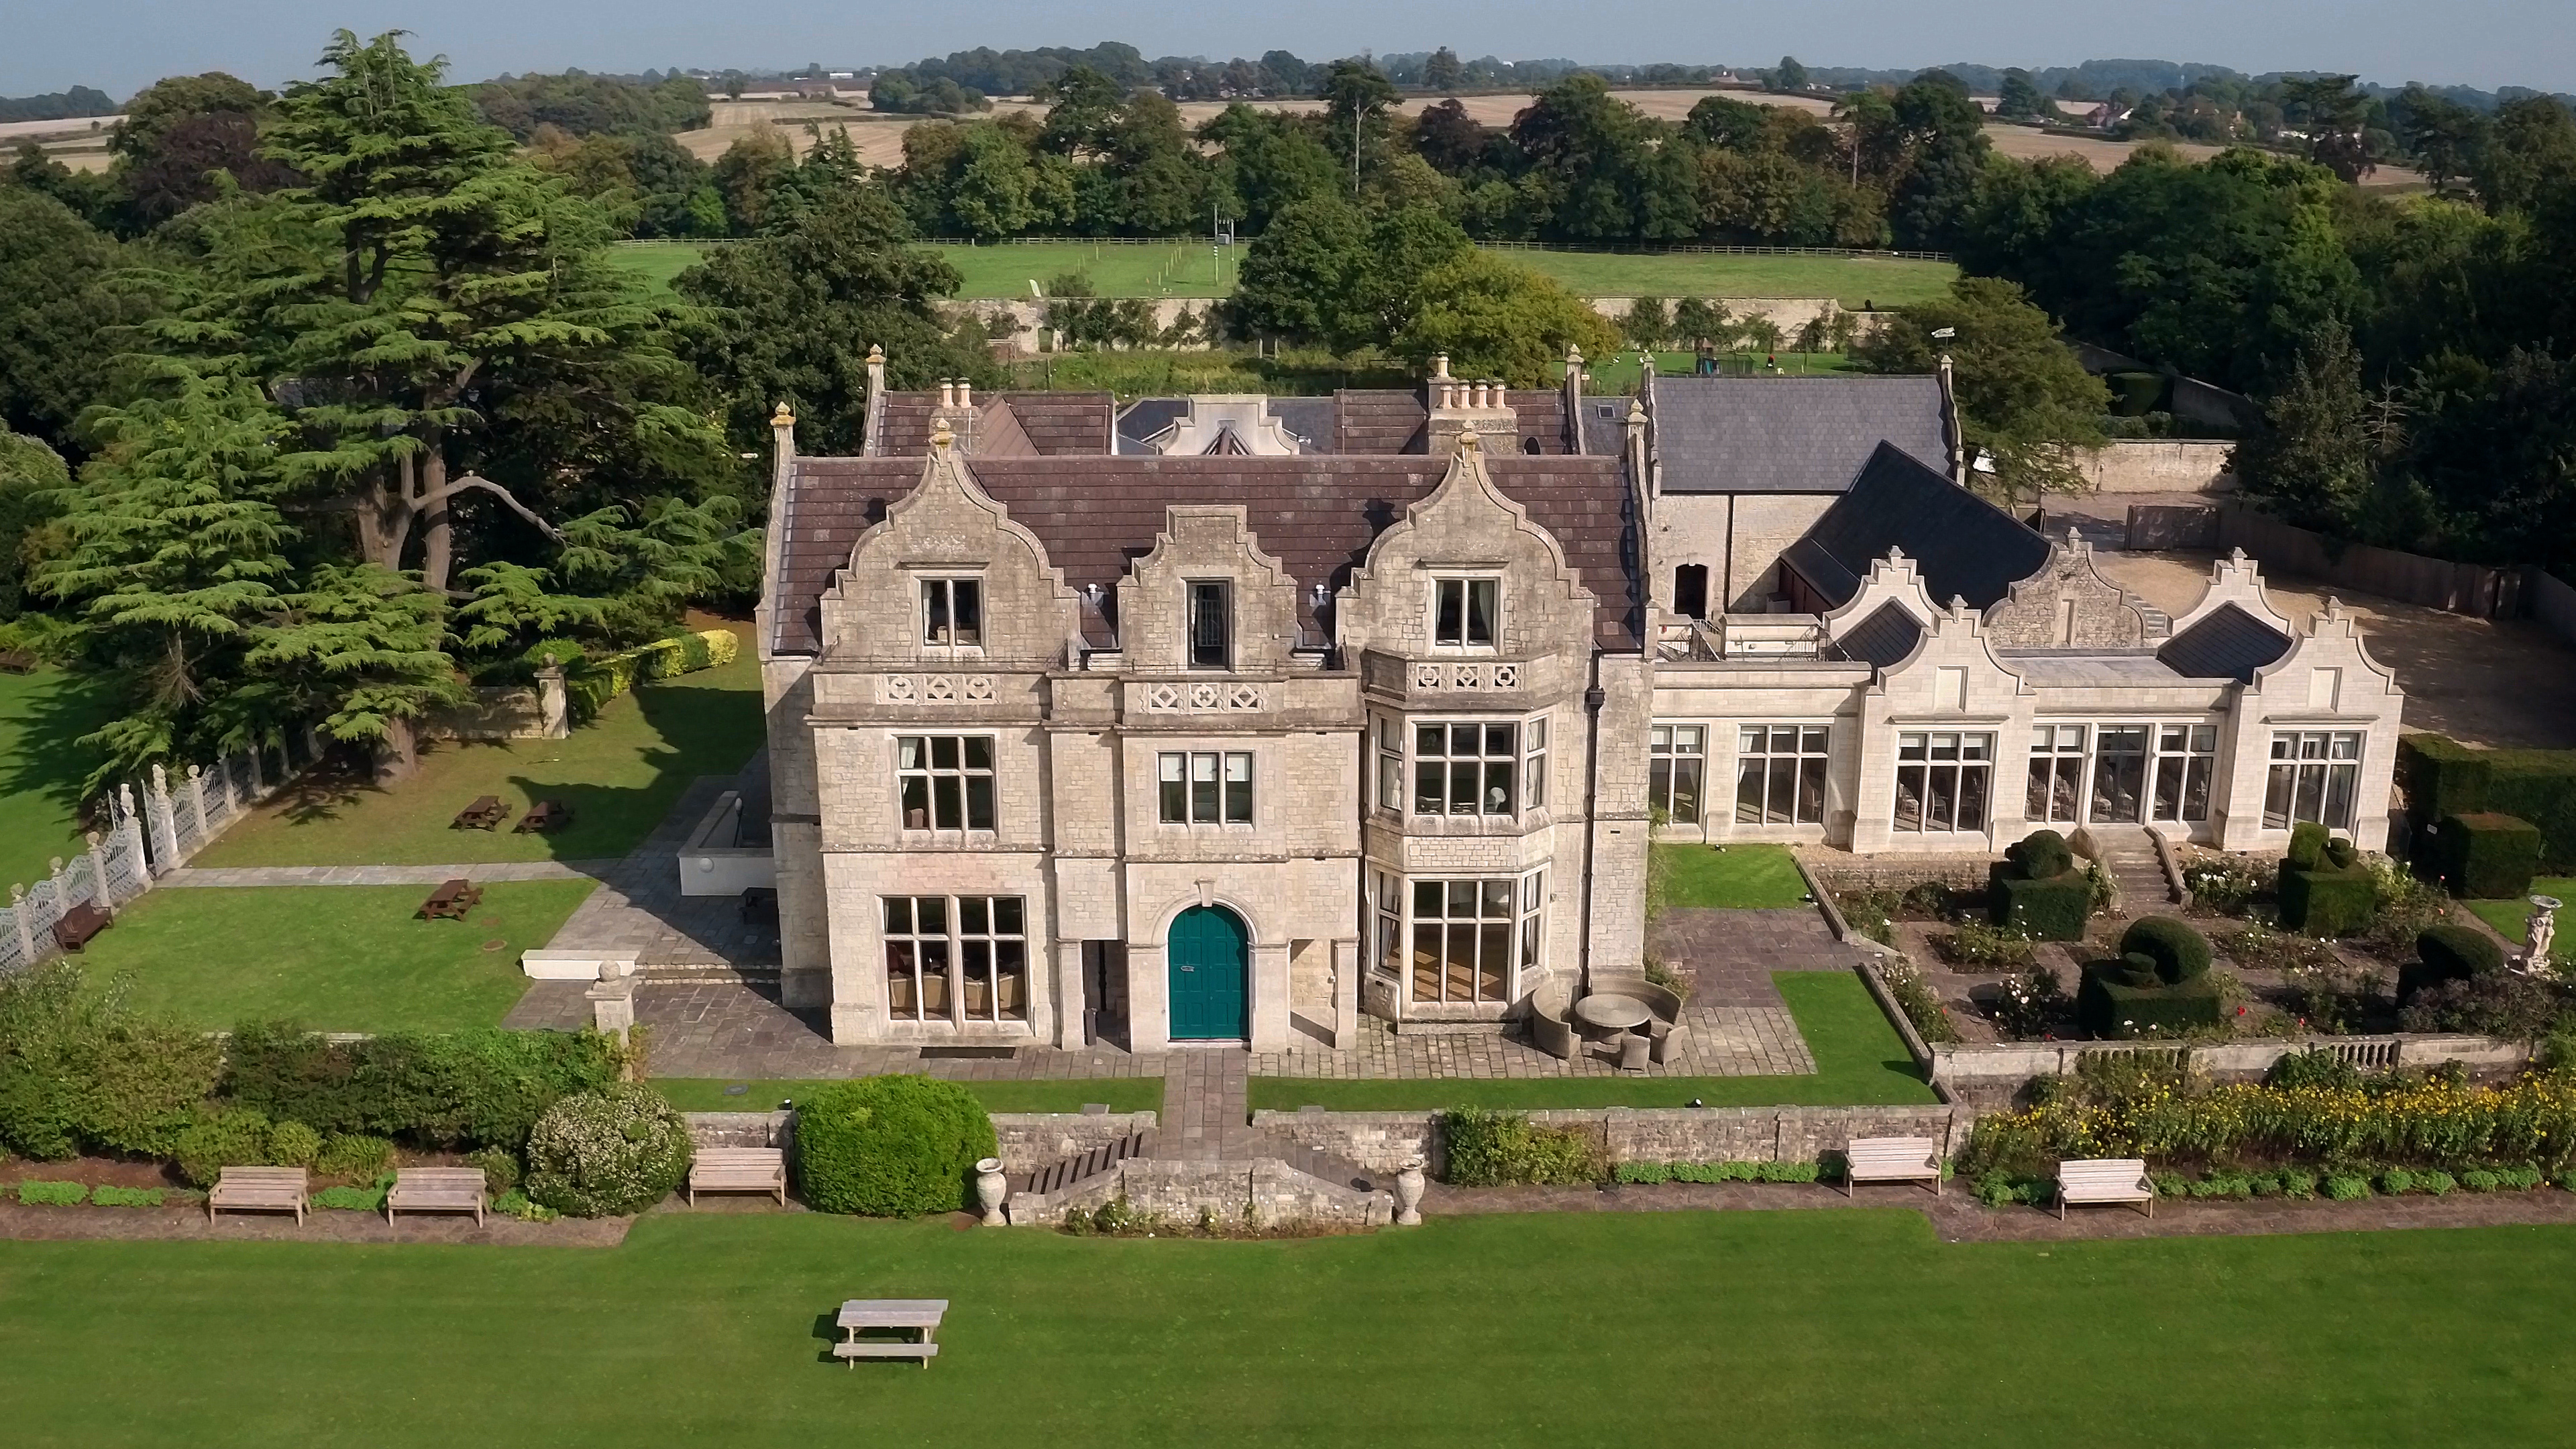 The renovations to the Manor cost £5million